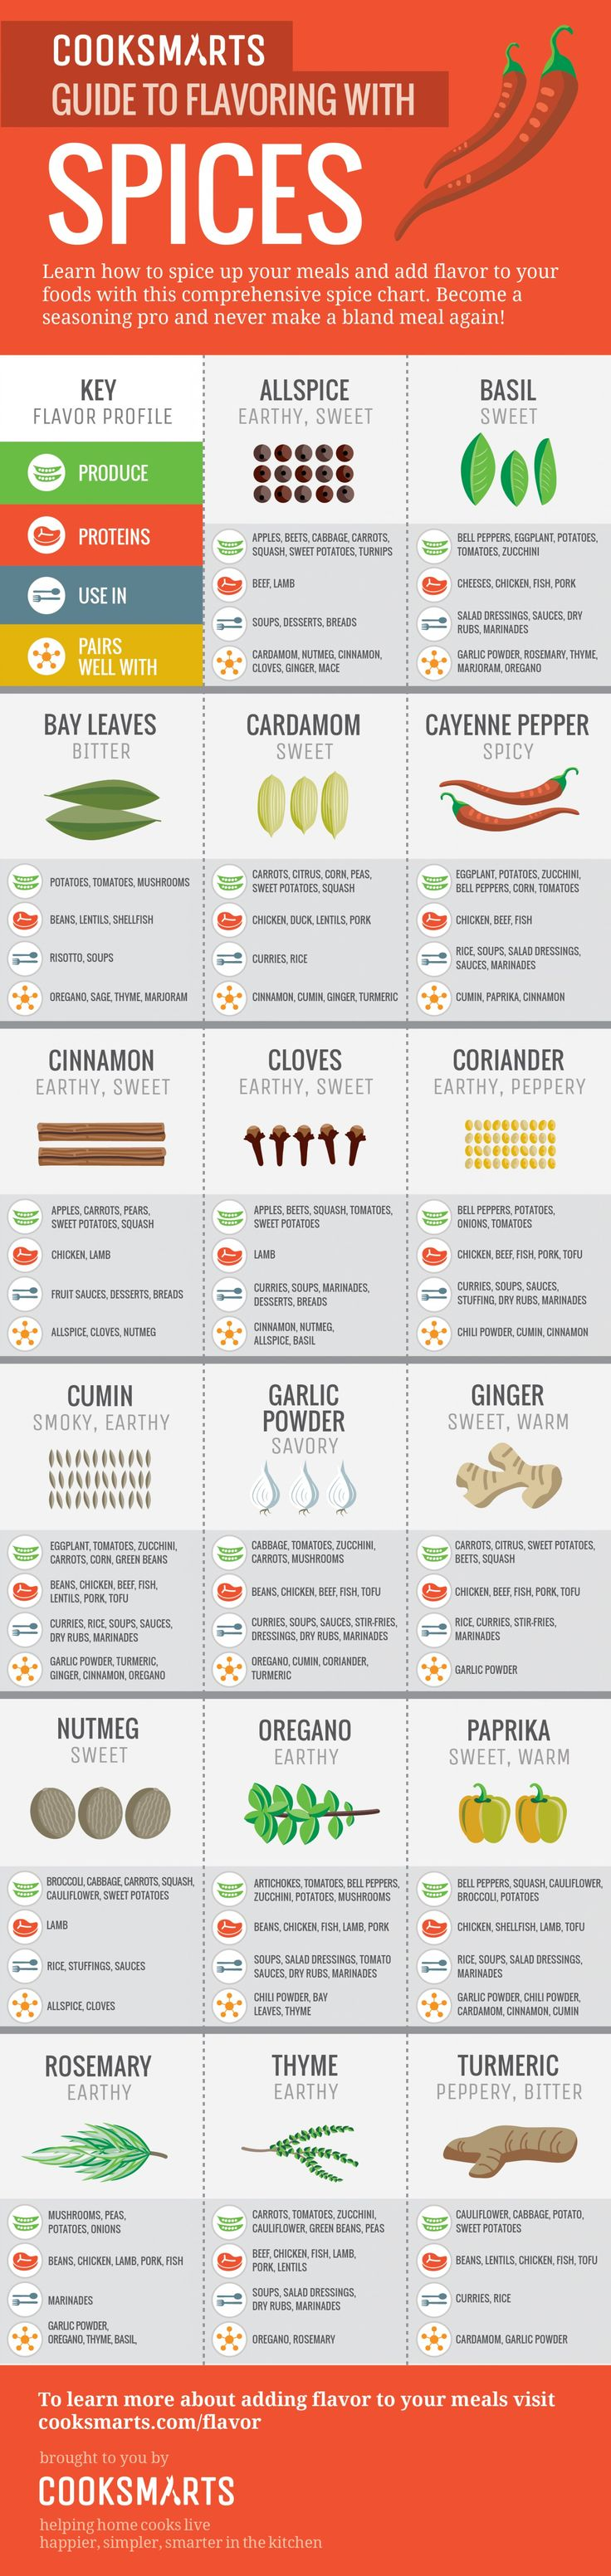 Guide to Flavoring with Spices #Infographic by Cook Smarts via @Visually